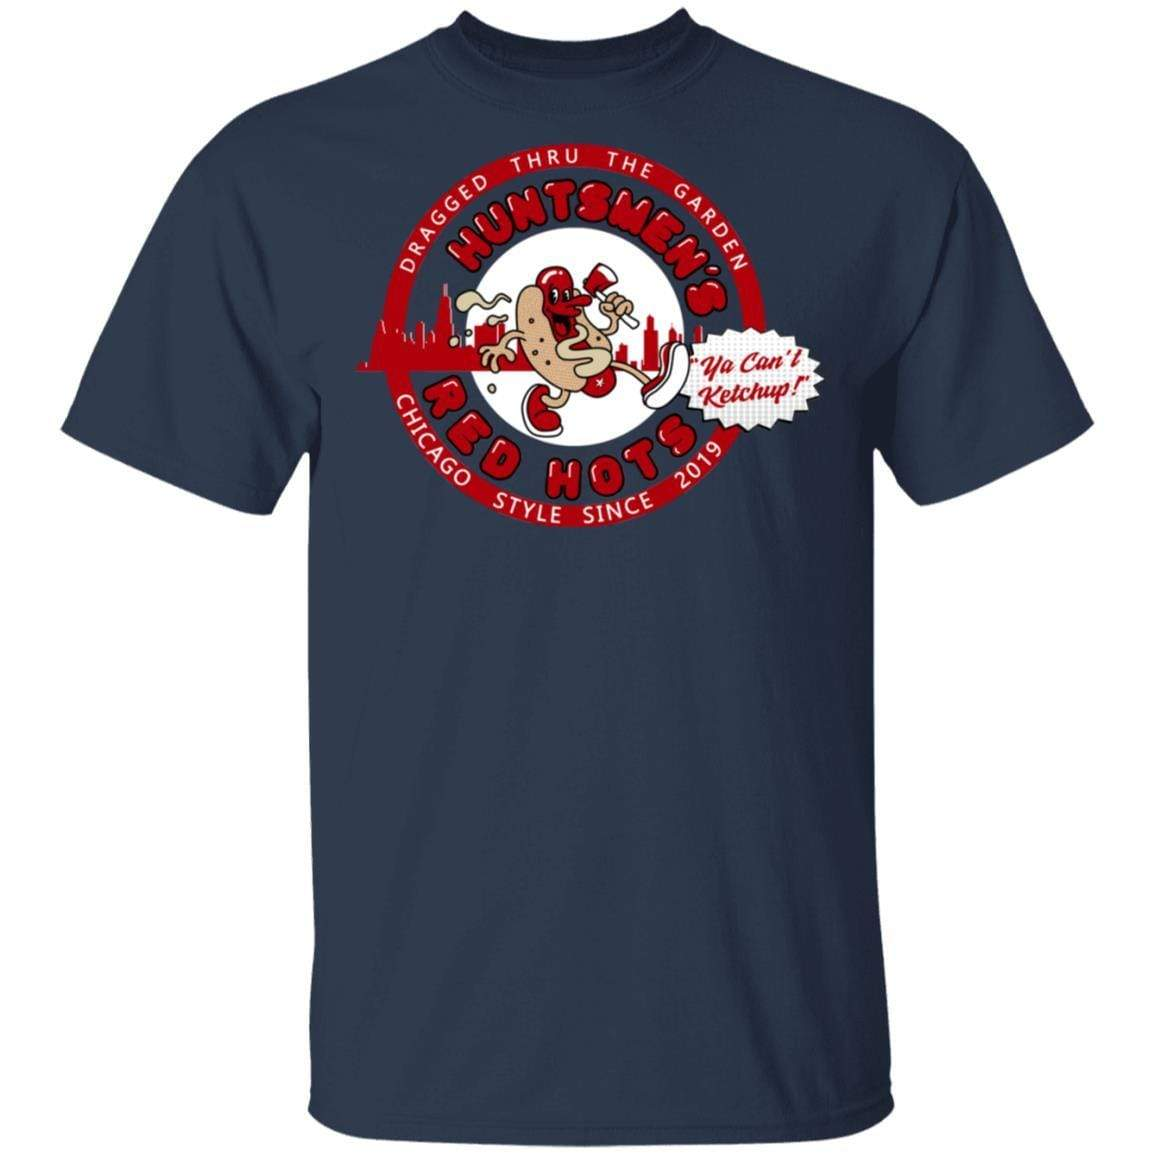 Huntsmen's Red Hots Ya Can't Ketchup Chicago Style 2019 T-Shirts, Hoodies 1049-9966-88445034-48248 - Tee Ript